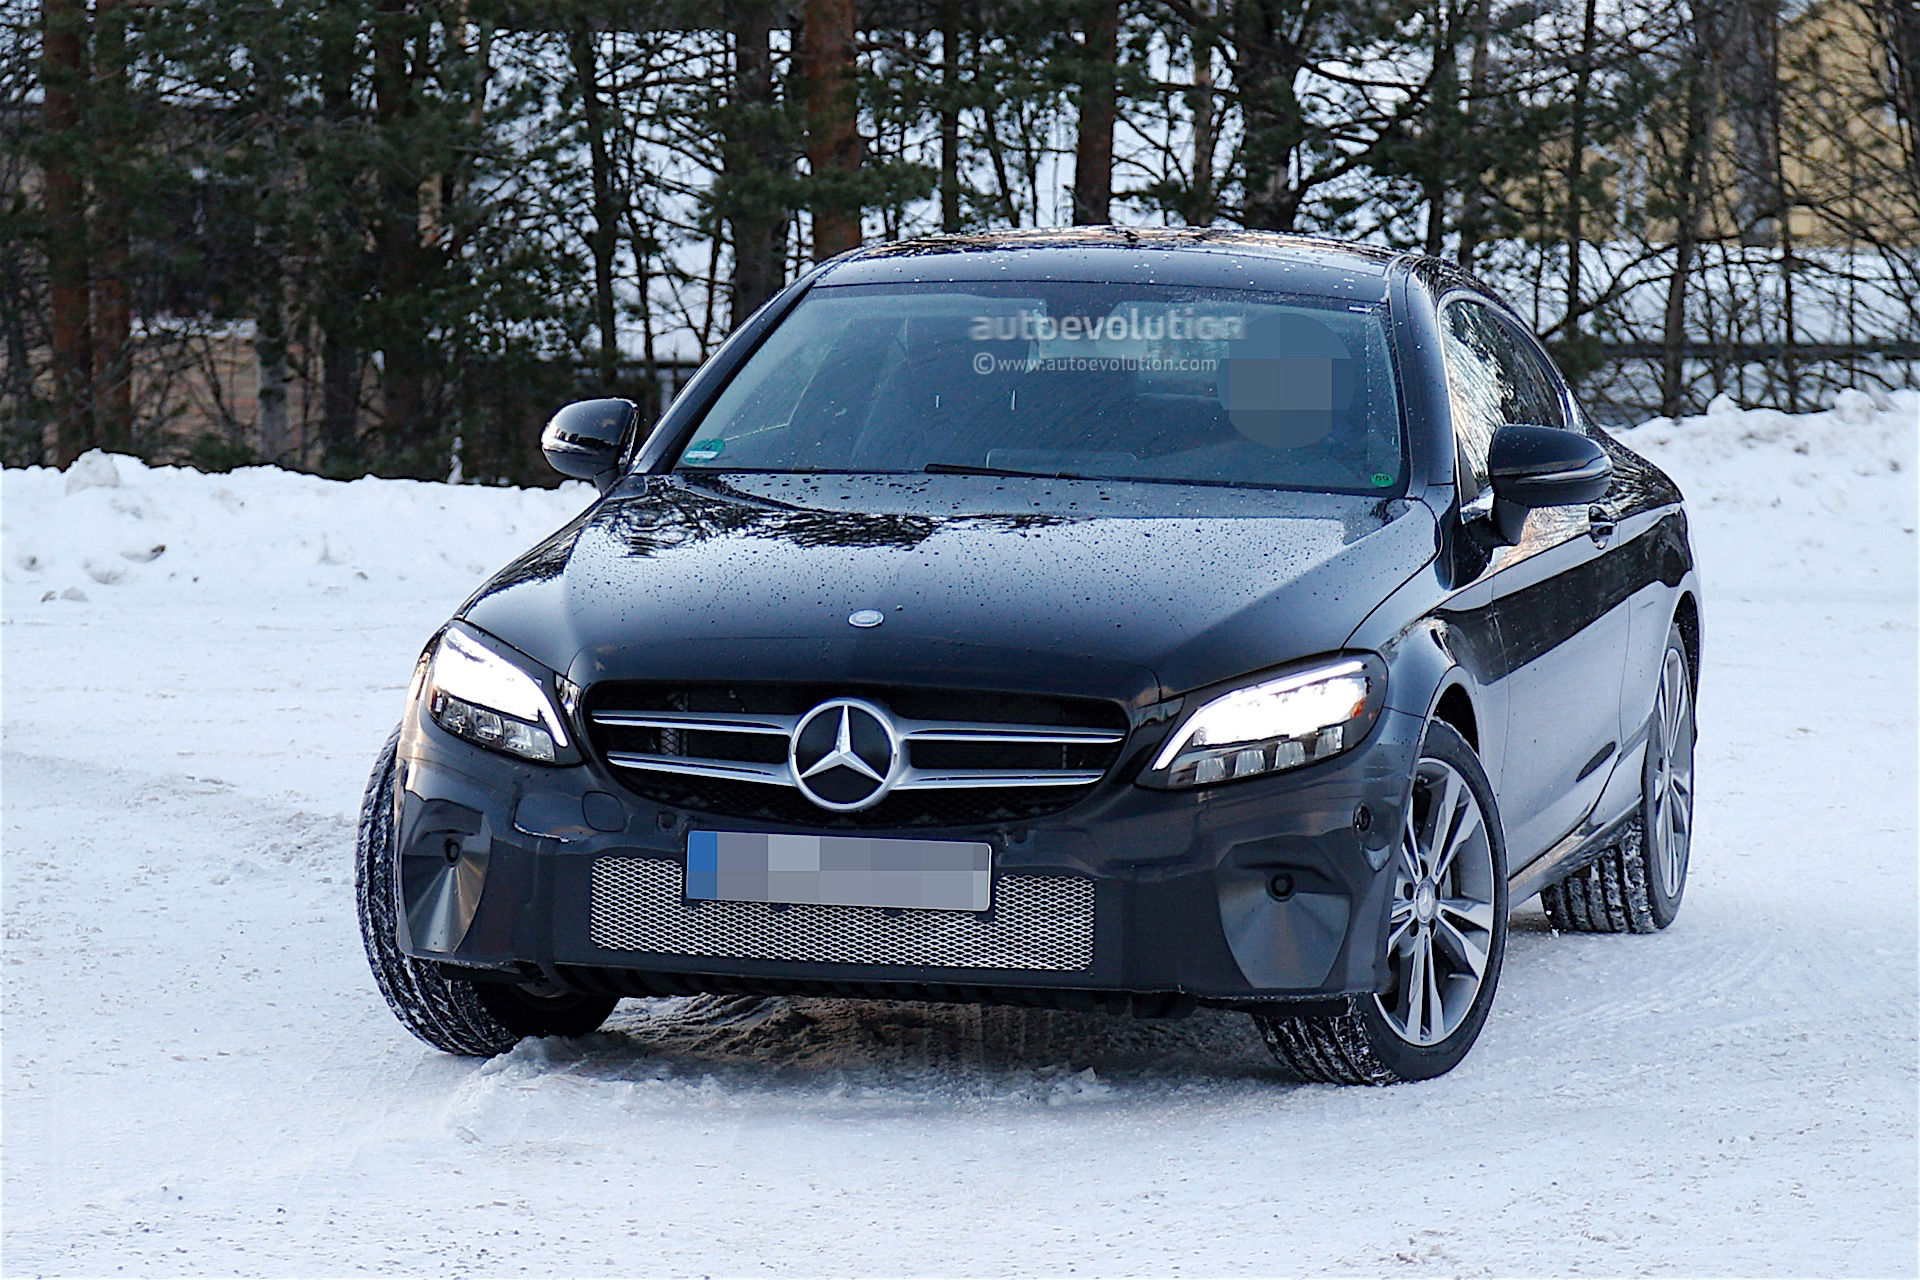 2018 Mercedes Benz C Coupe Facelift Spied With Minimal Camouflage Autoevolution